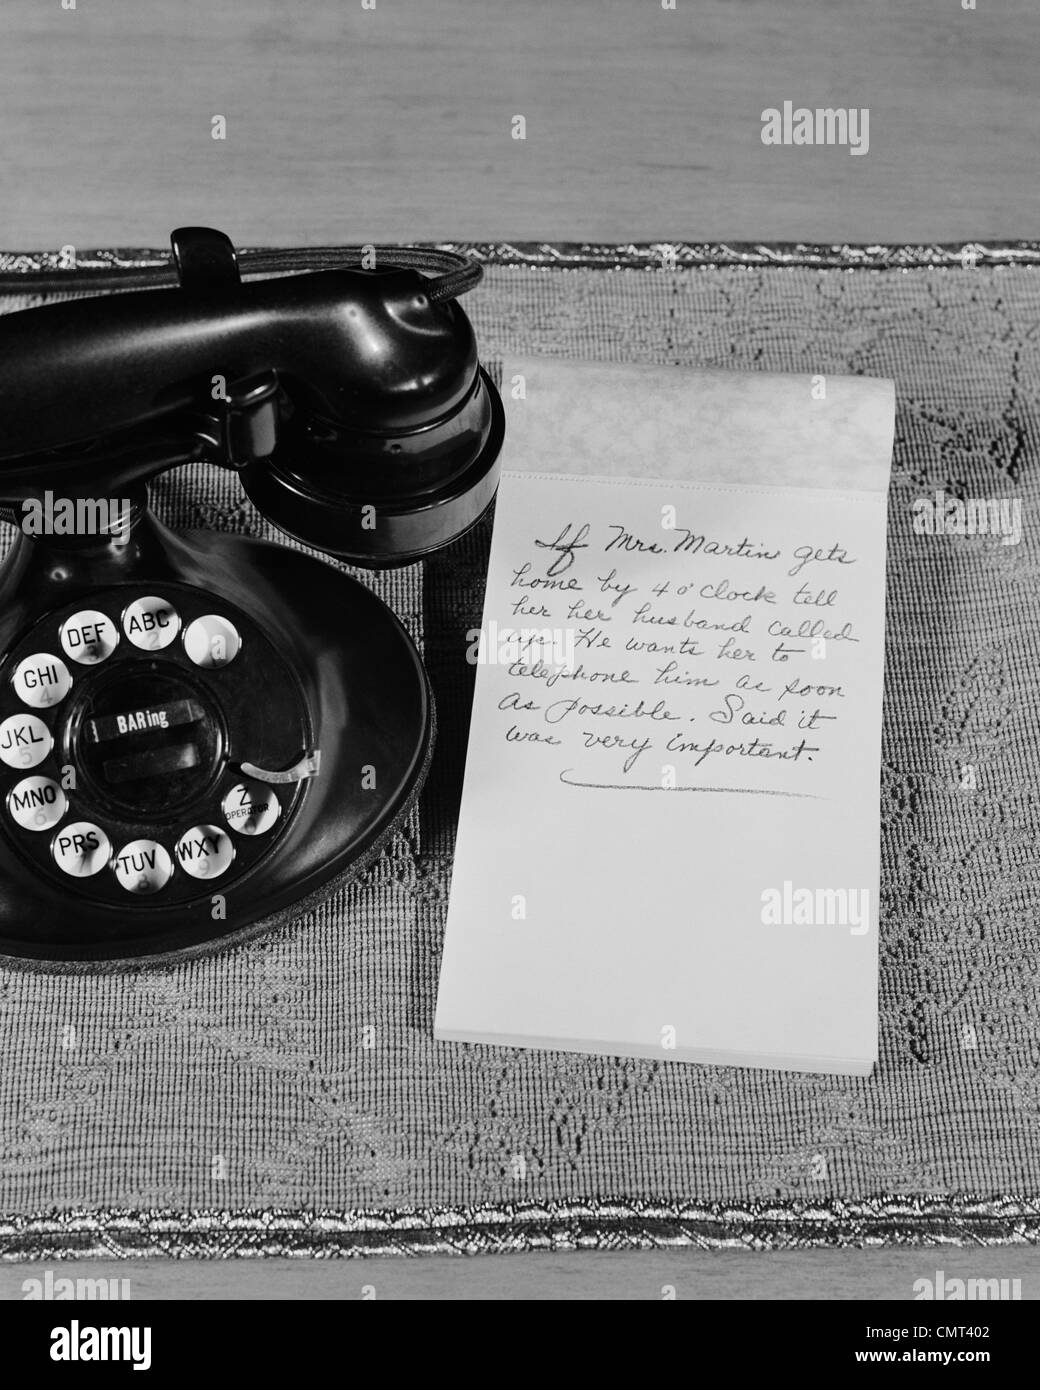 1930s 1940s ROTARY TELEPHONE NOTE PAD WITH PHONE MESSAGE - Stock Image